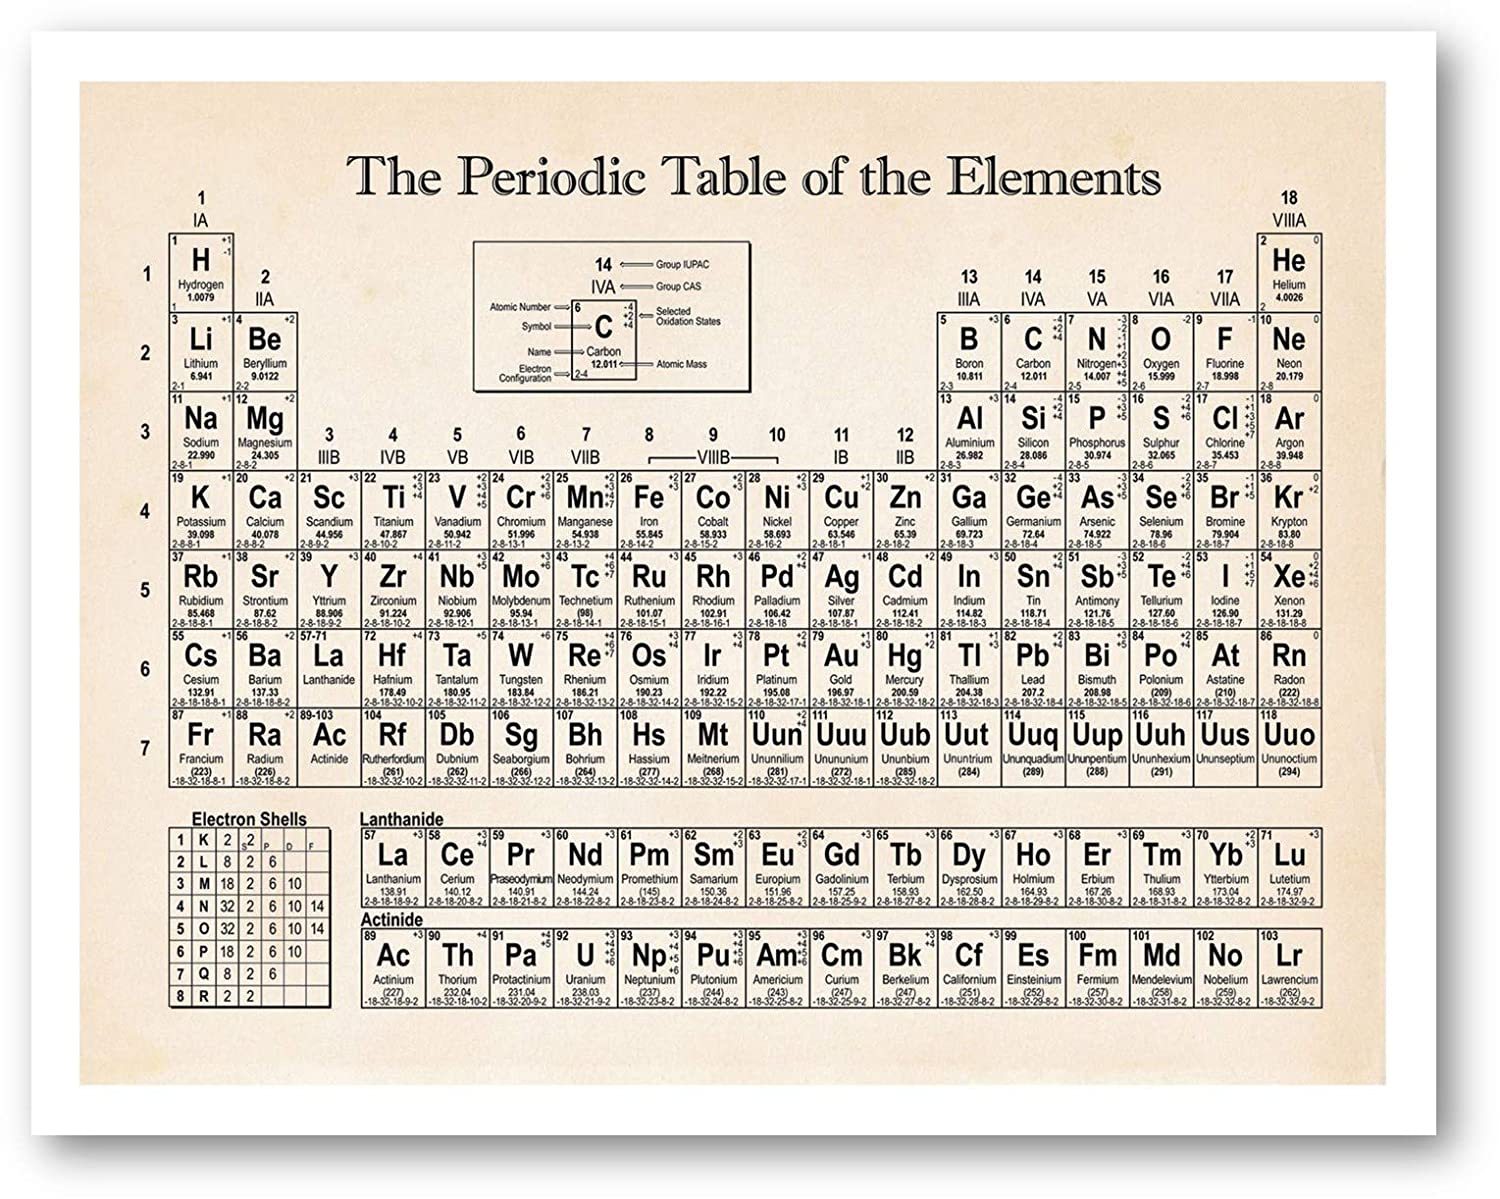 Periodic Table of Elements Vintage Drawing - Classroom, Office, Science Laboratory Decor - Chemistry Lab Artwork - 11 x 14 Unframed Print - Great Gift for Scientists, Teachers, Pharmacists, Geeks